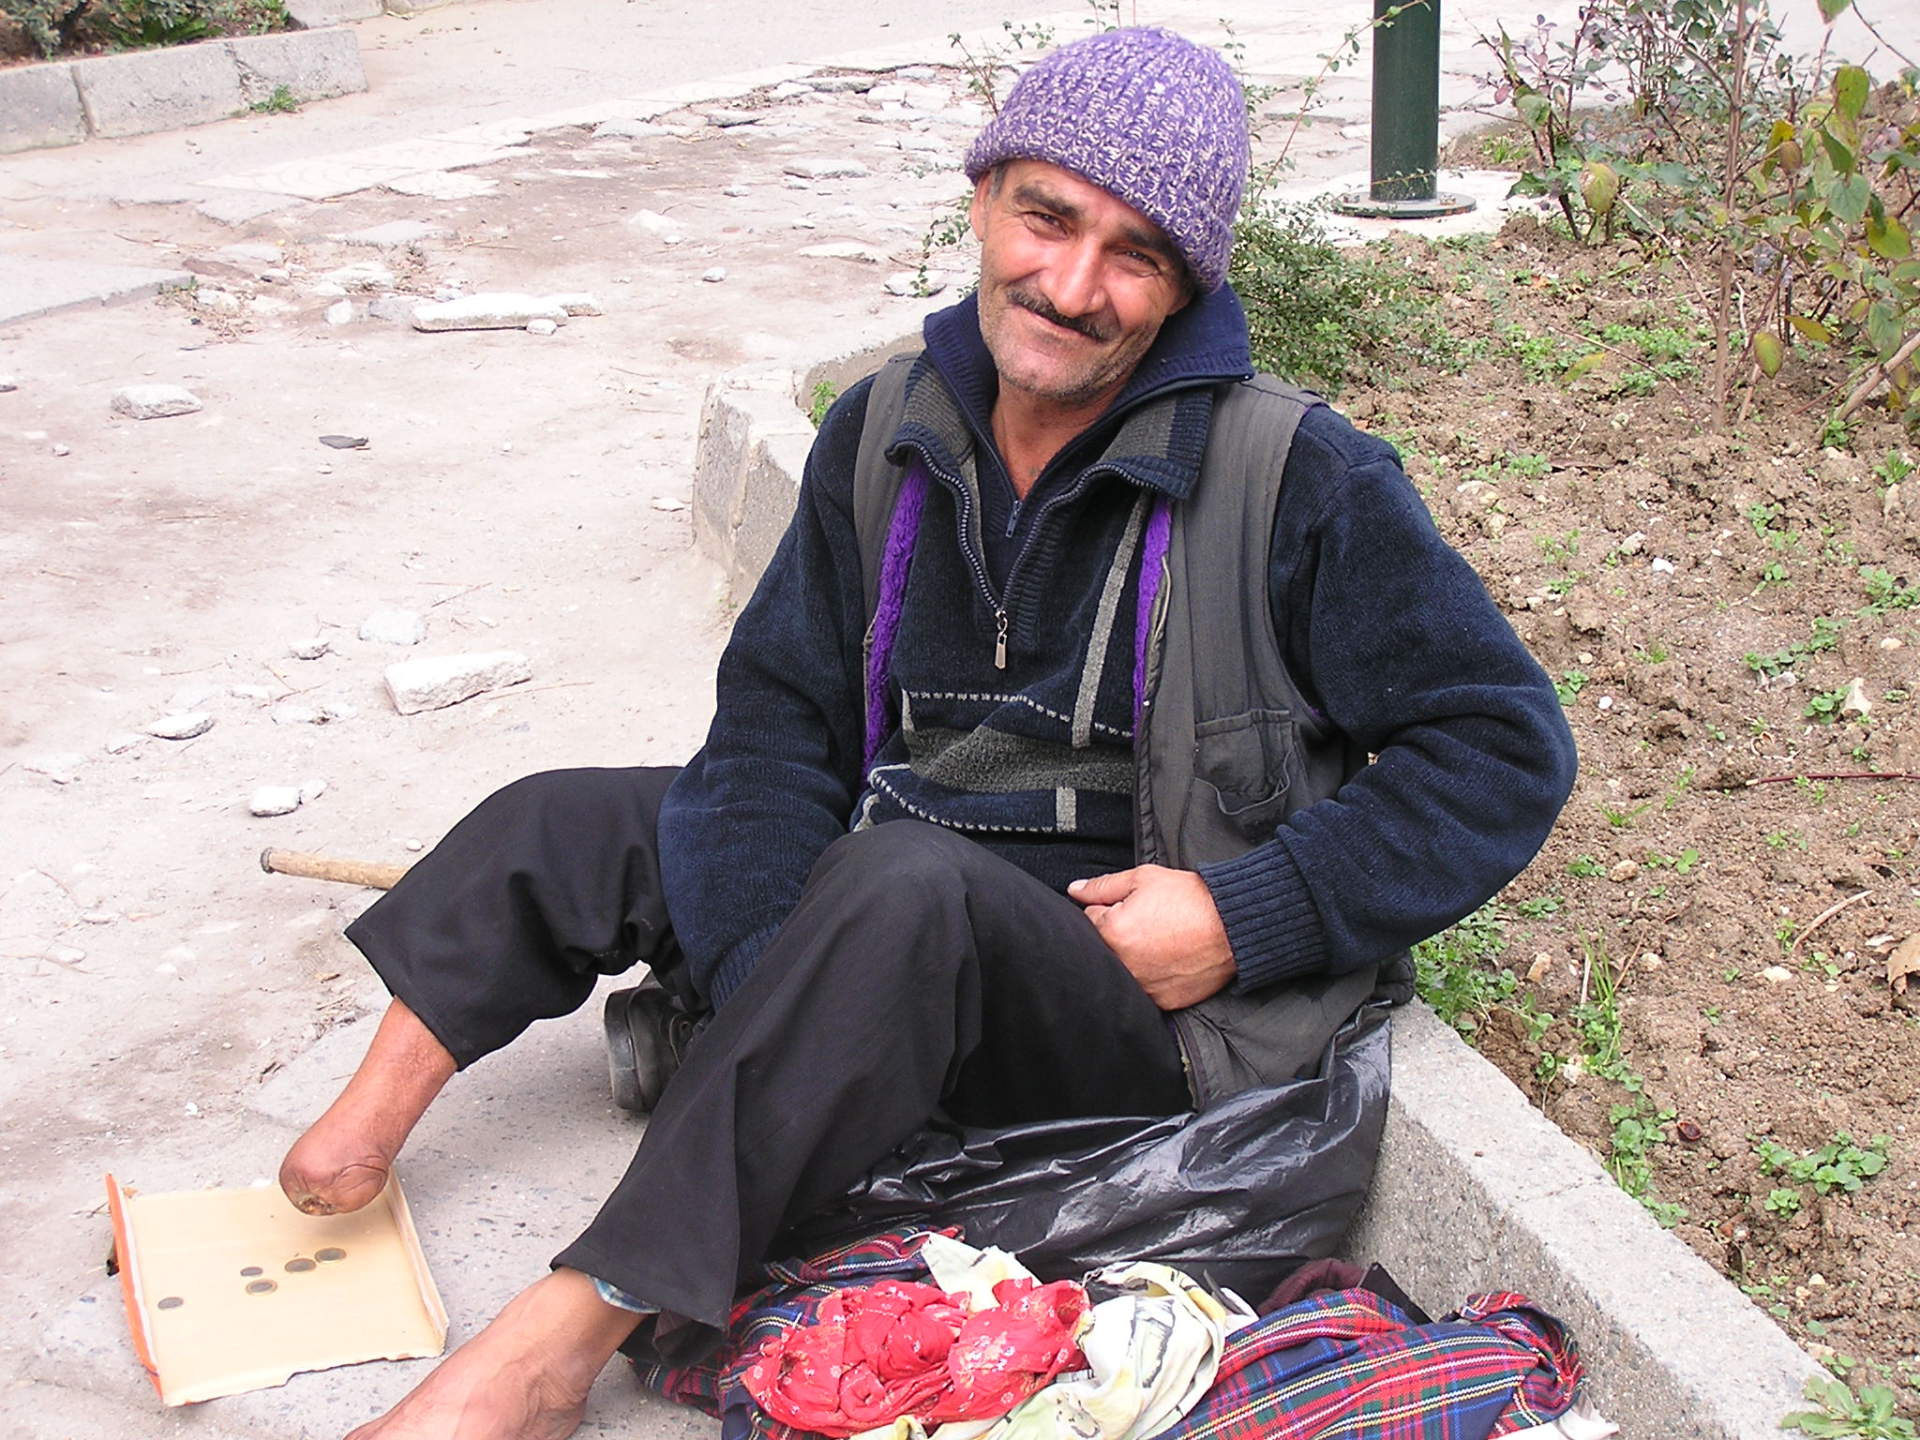 This sweet beggar was pleased to smile for a photo. Istanbul, Turkey: chapter 45, You must only to love them. http://mershon.wordpress.com